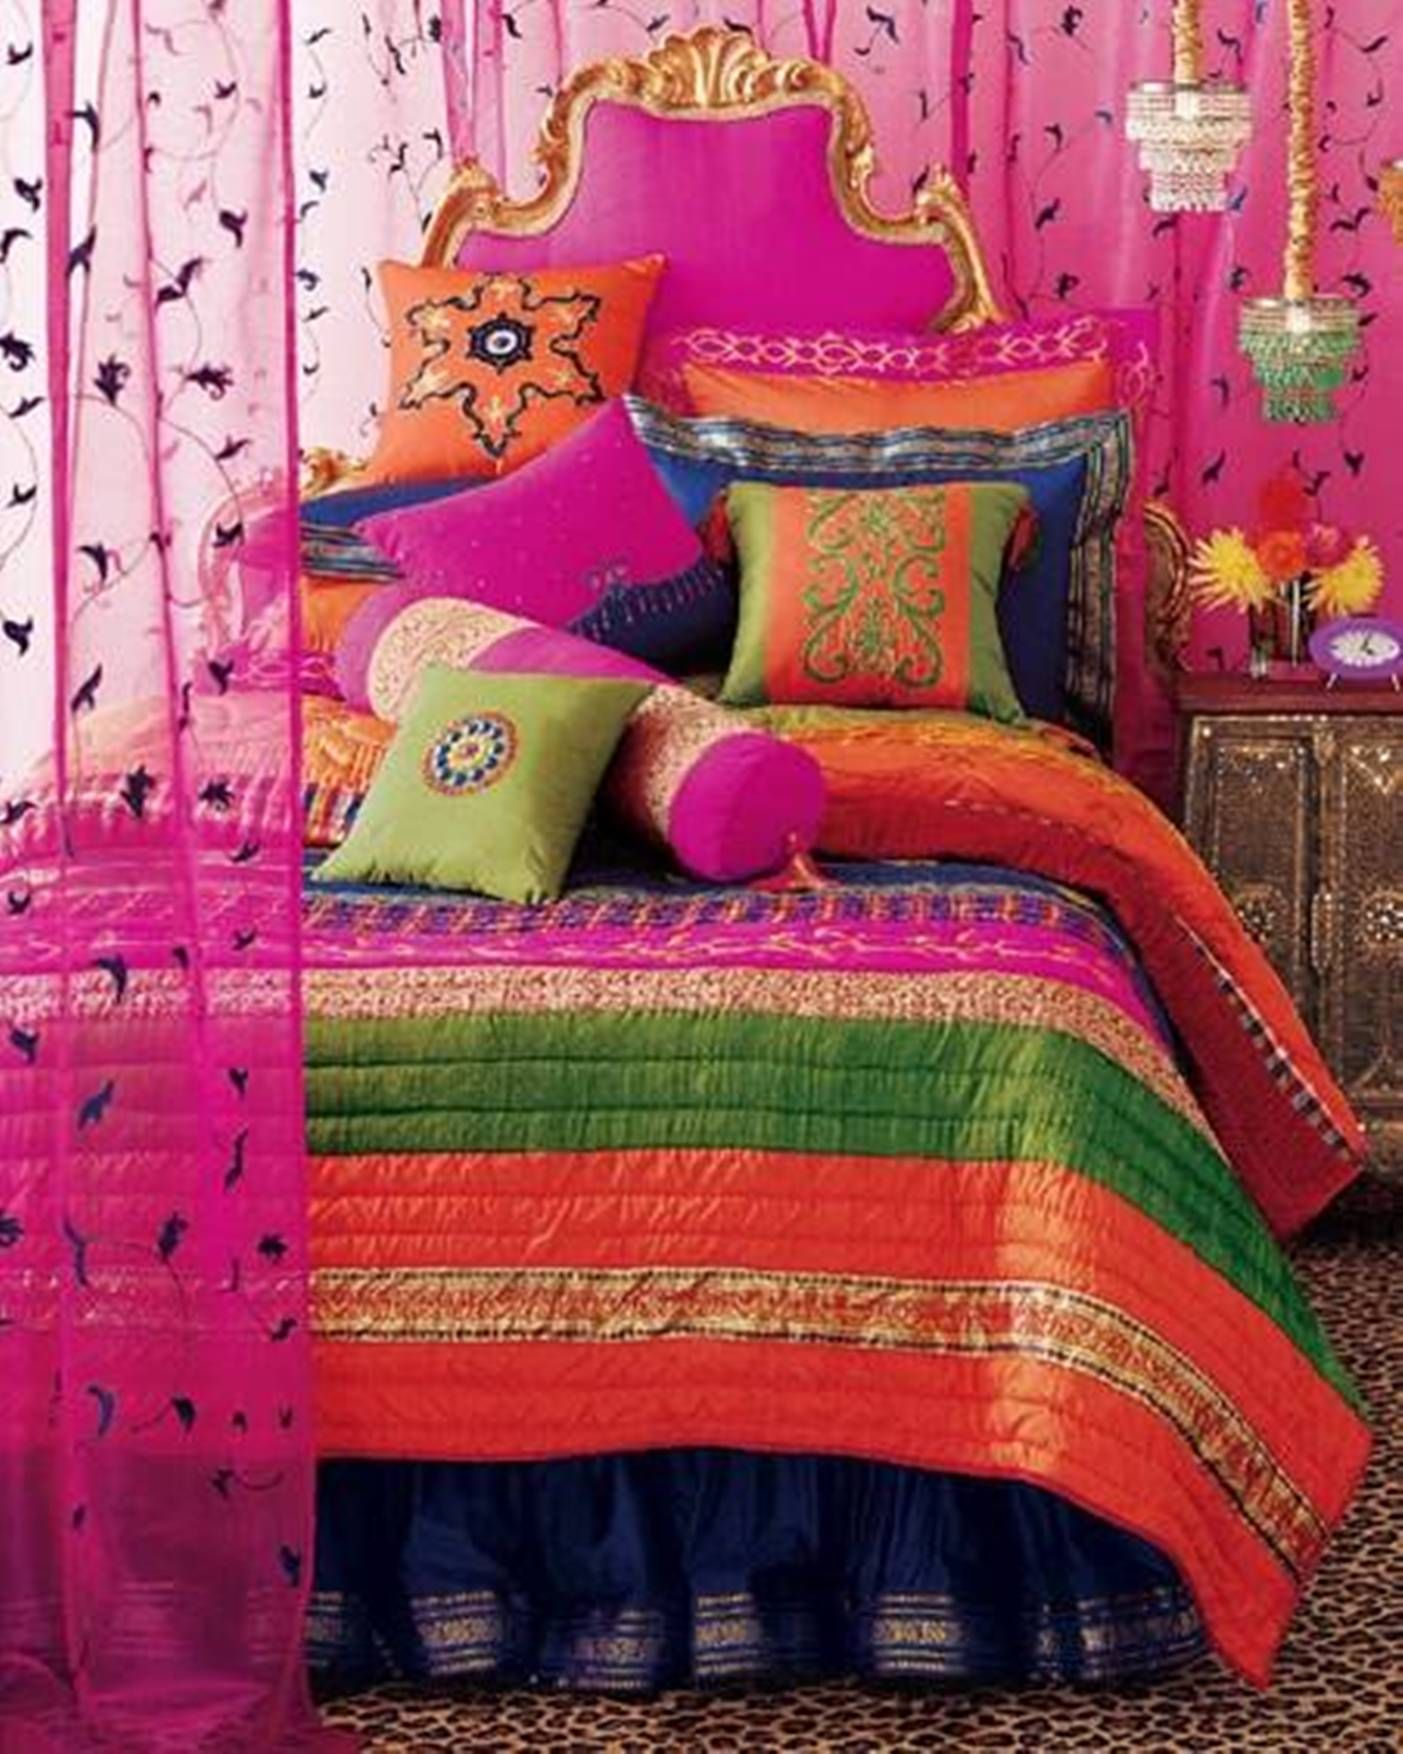 indian inspired bedding queen size bed bedroom beautiful indian home decor with colorful bedding and curtains nightstand